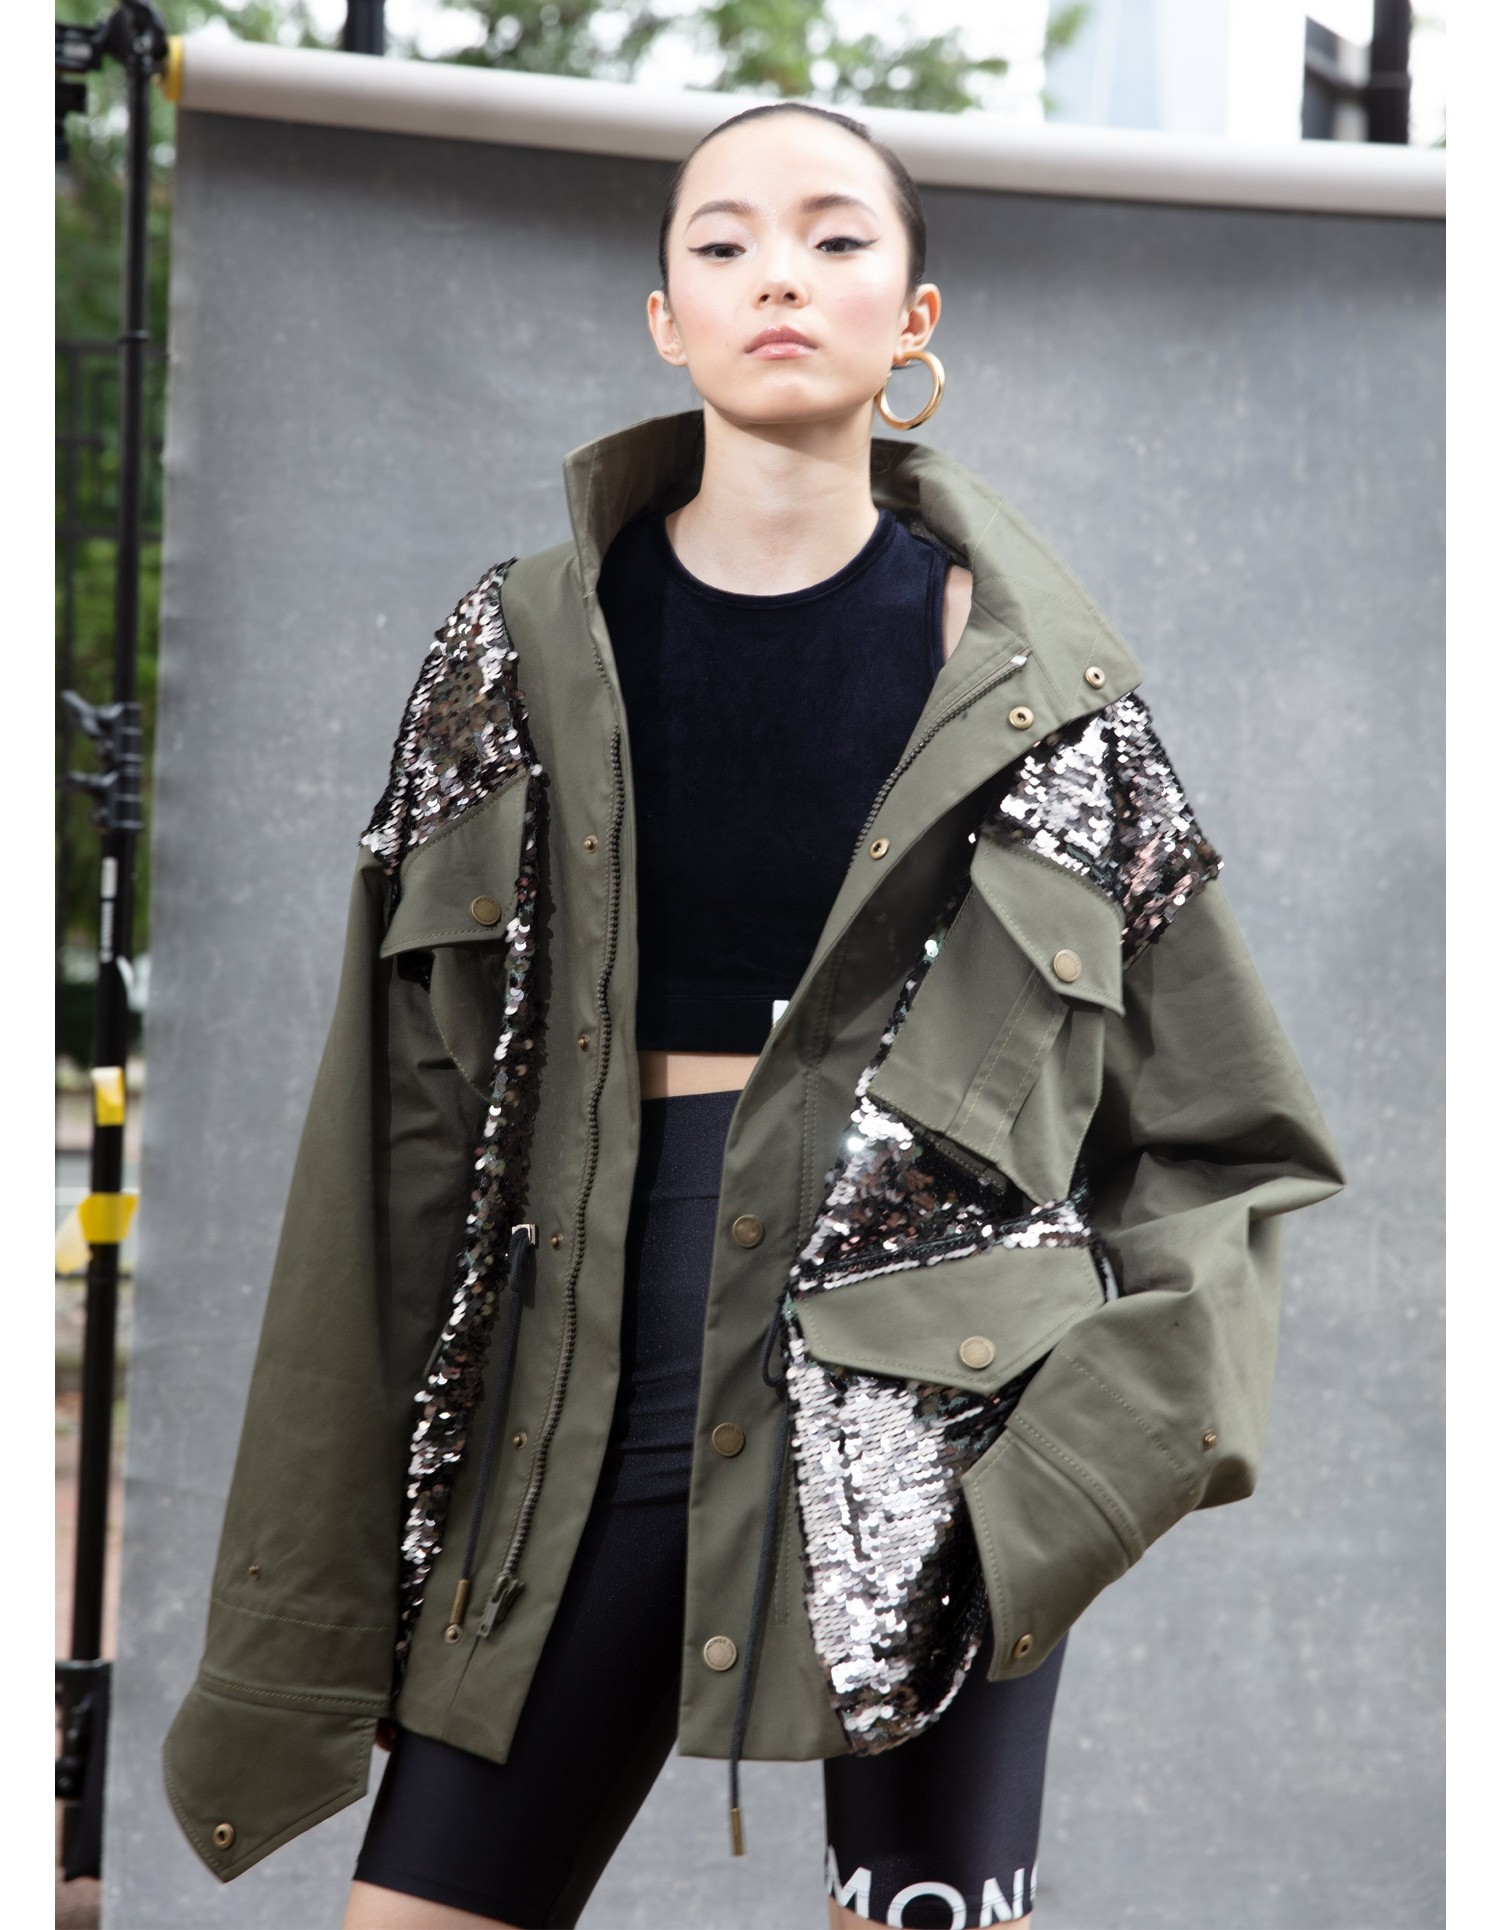 SEQUINED FIELD JACKET